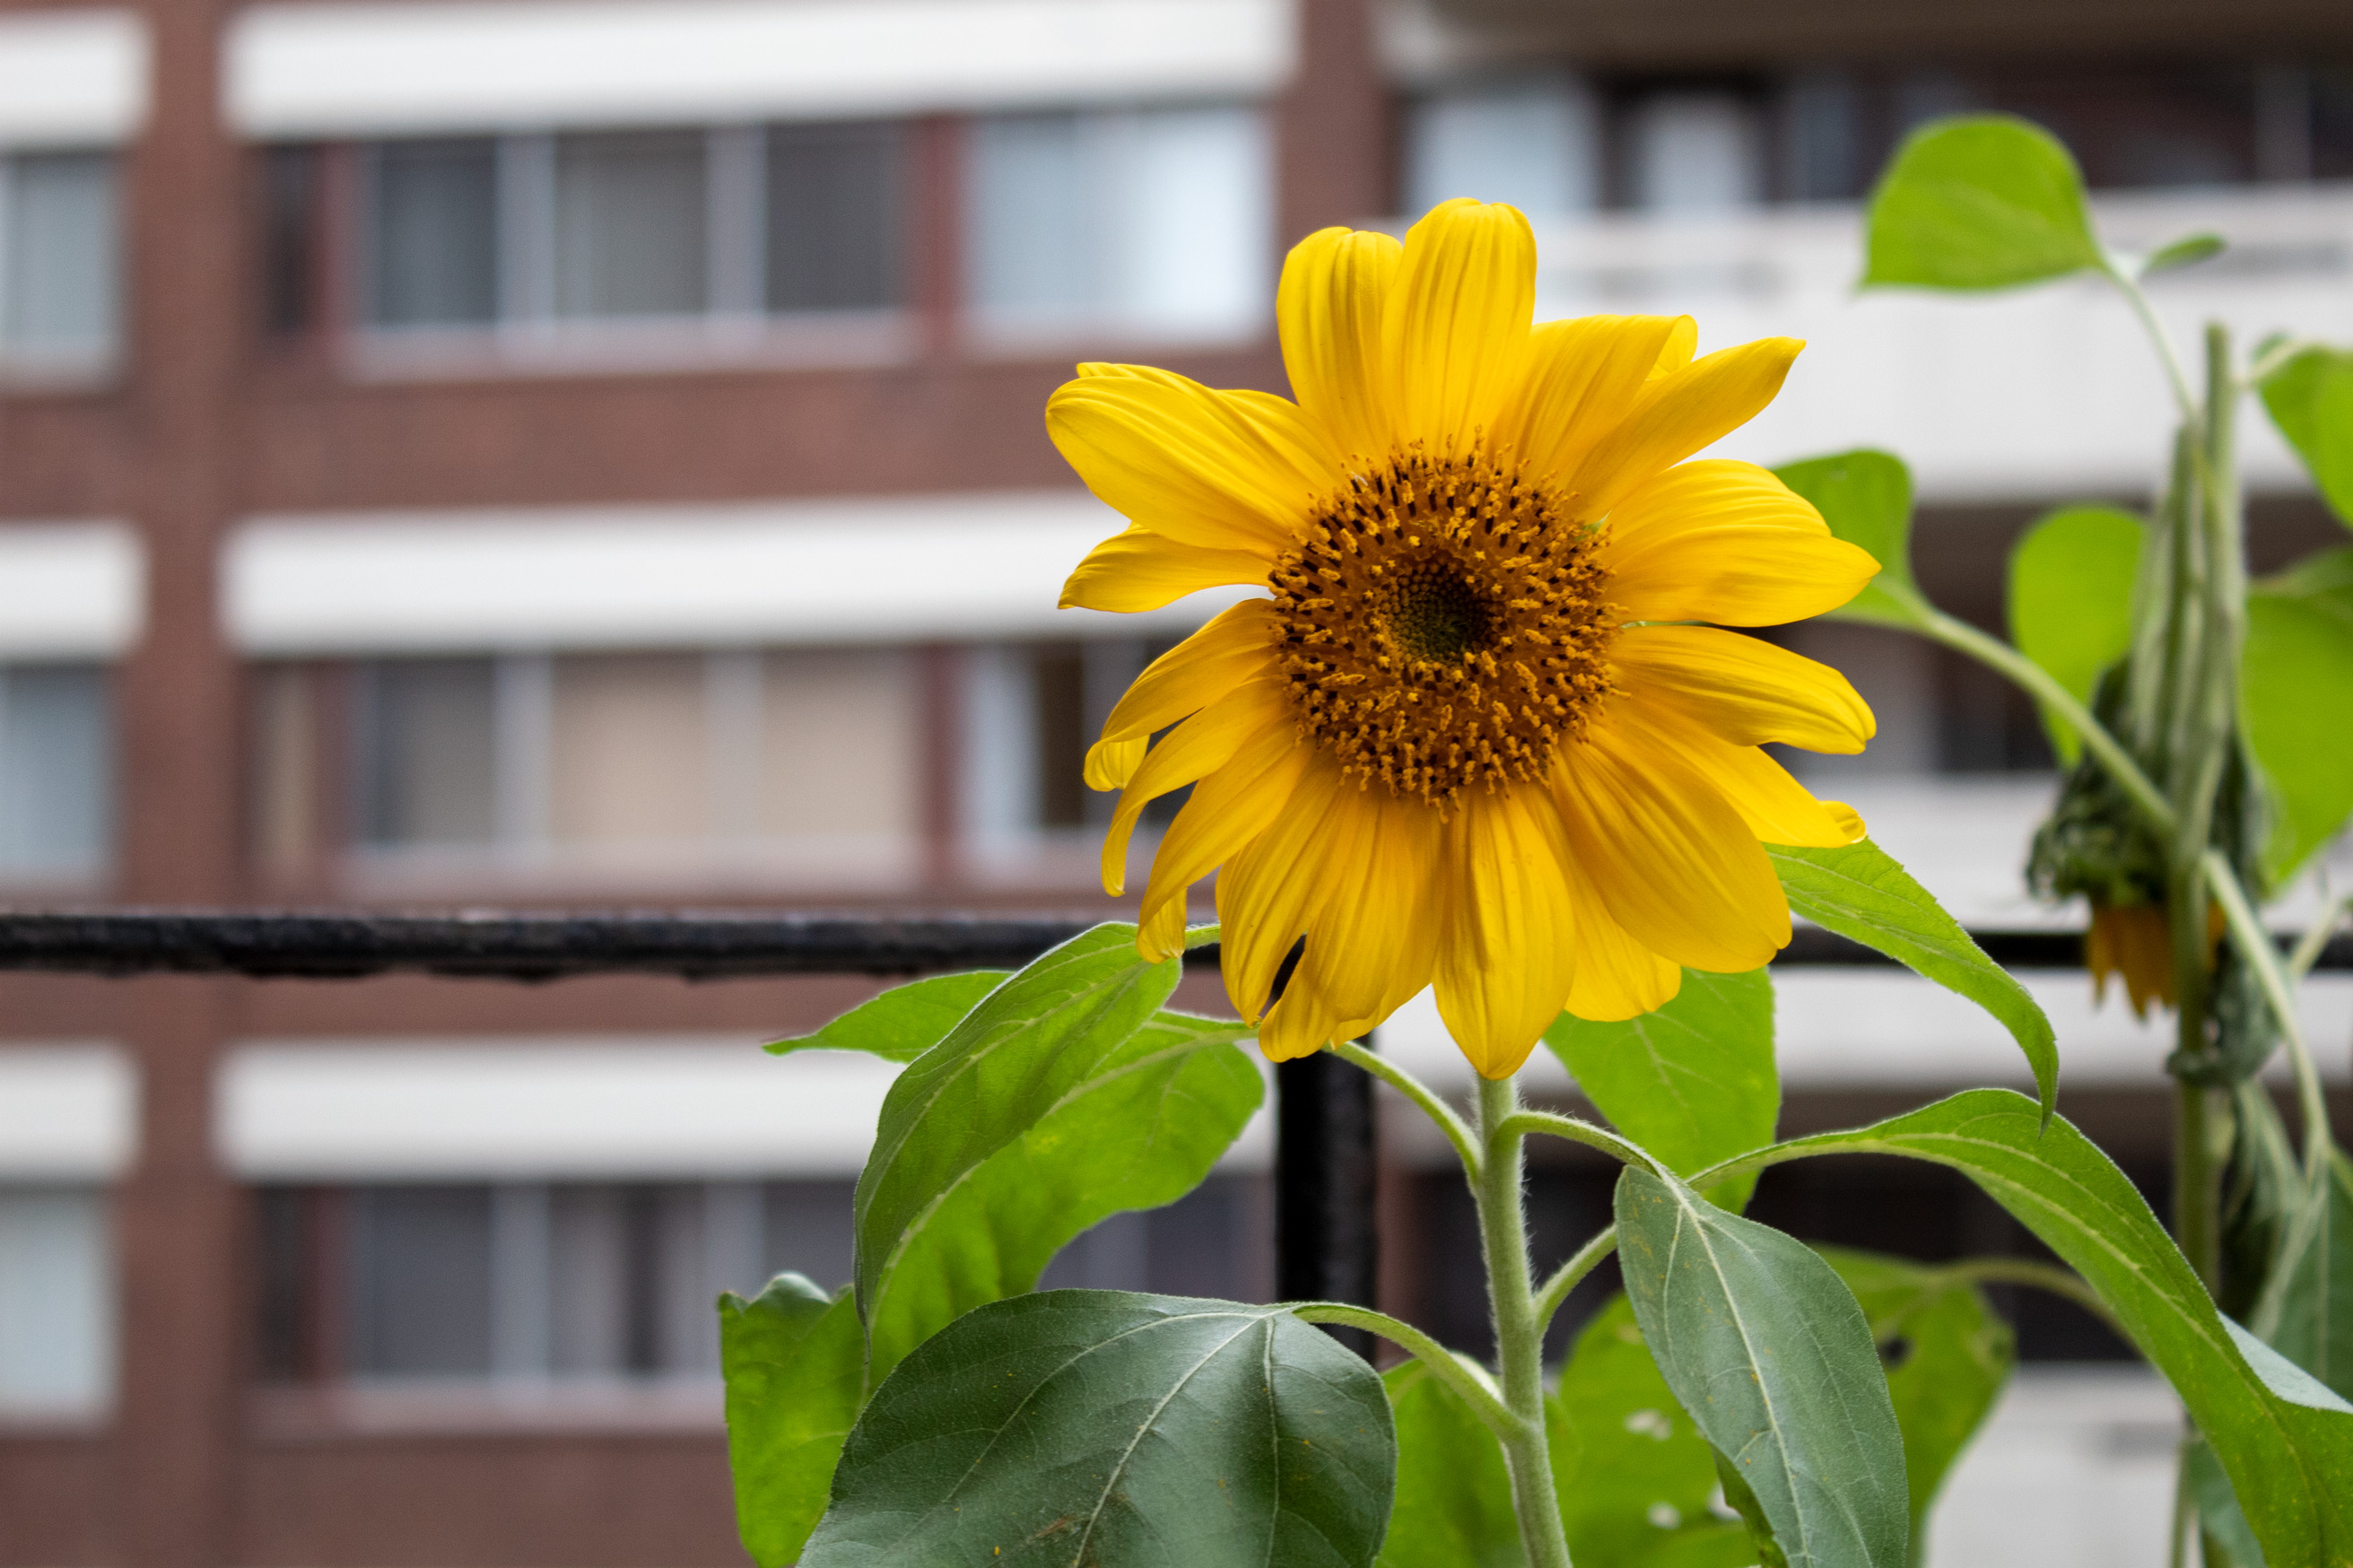 Bright yellow flower with green leaves and stalk in front of its deceased relative and a blurred building